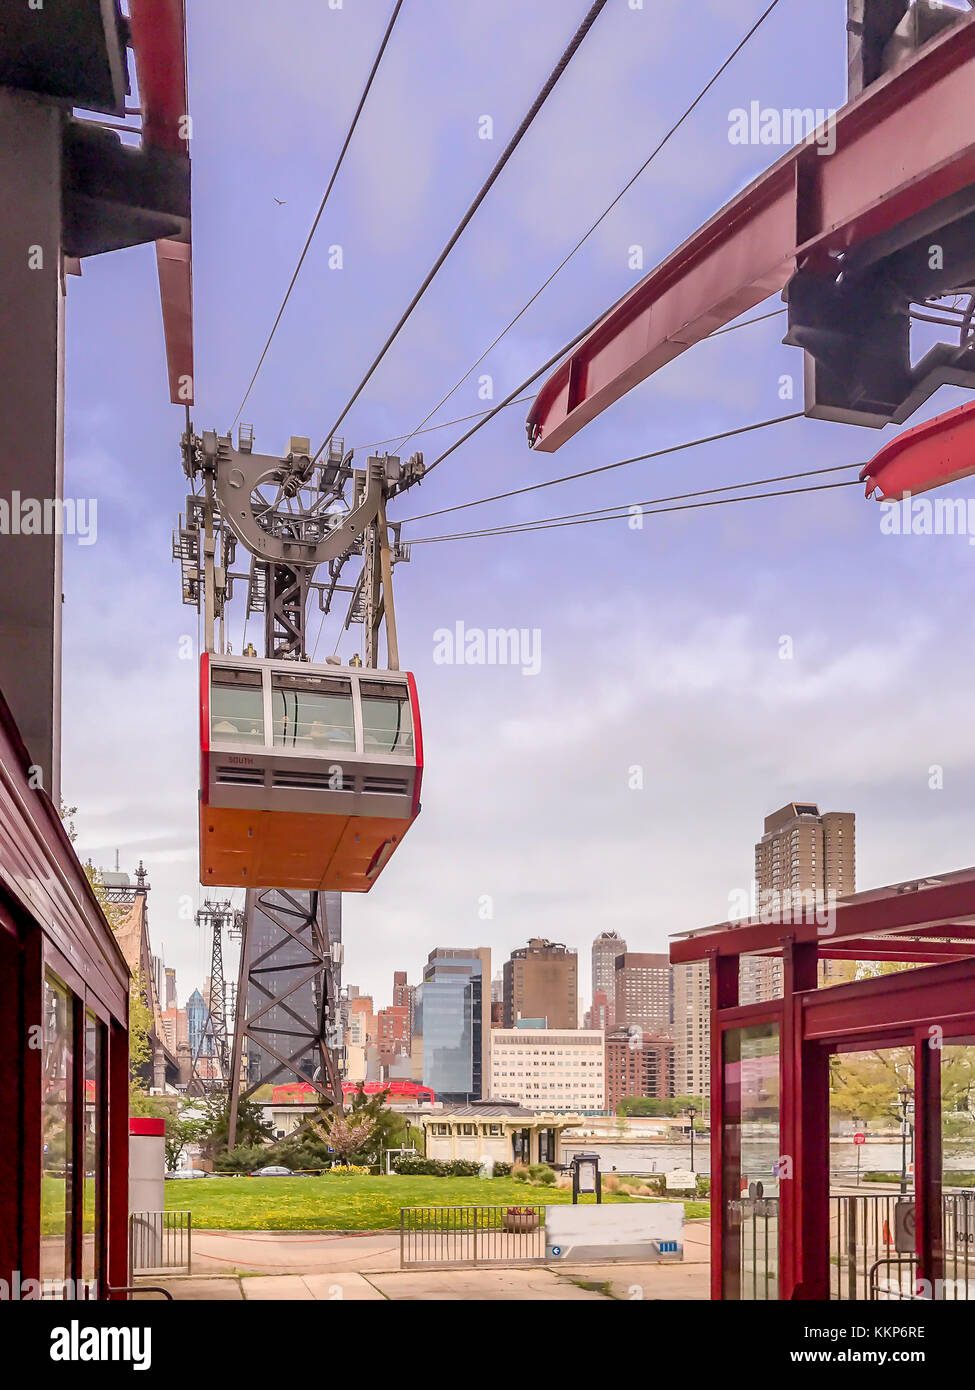 Airial tramway from Manhattan Island to Roosevelt Island, New York - Stock Image